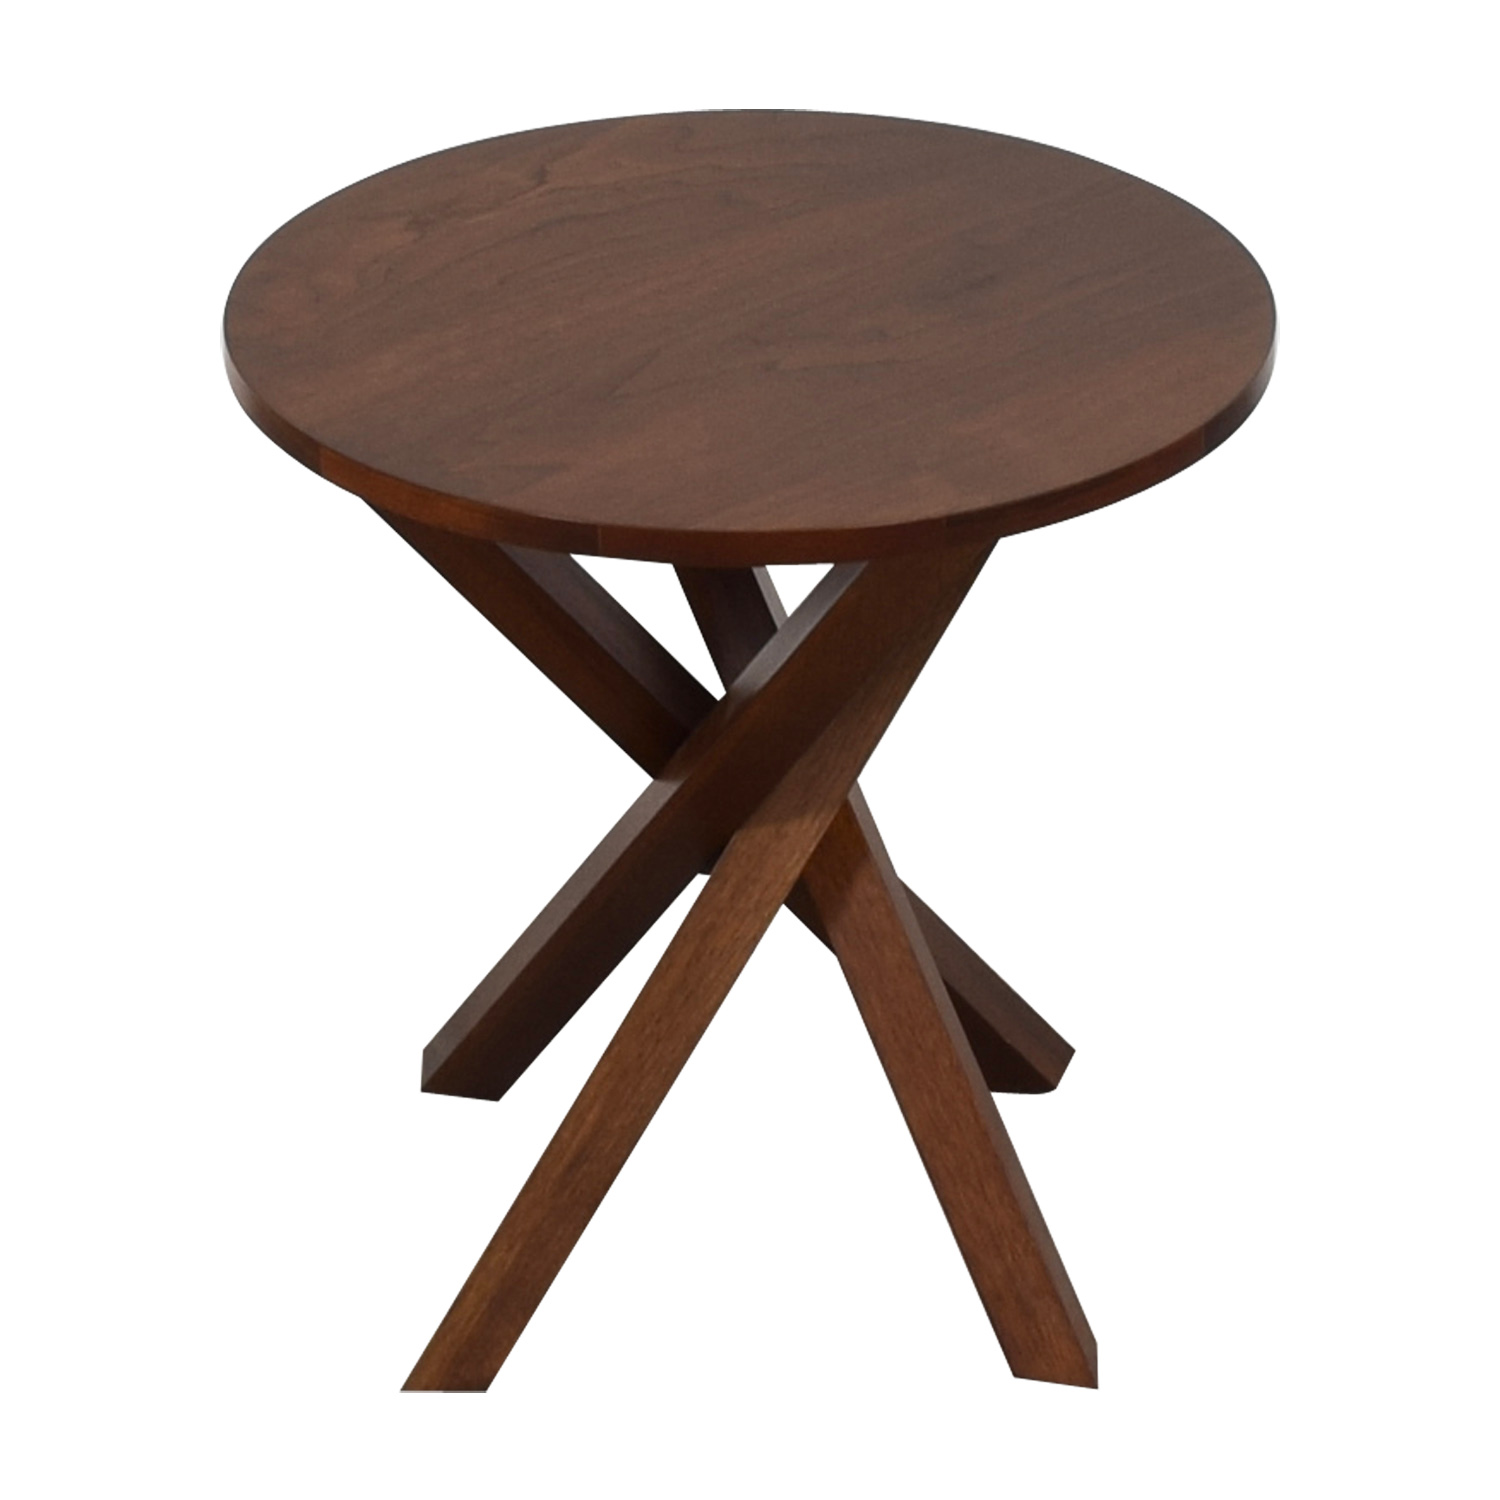 buy Crate & Barrel Round Wood End Table Crate & Barrel